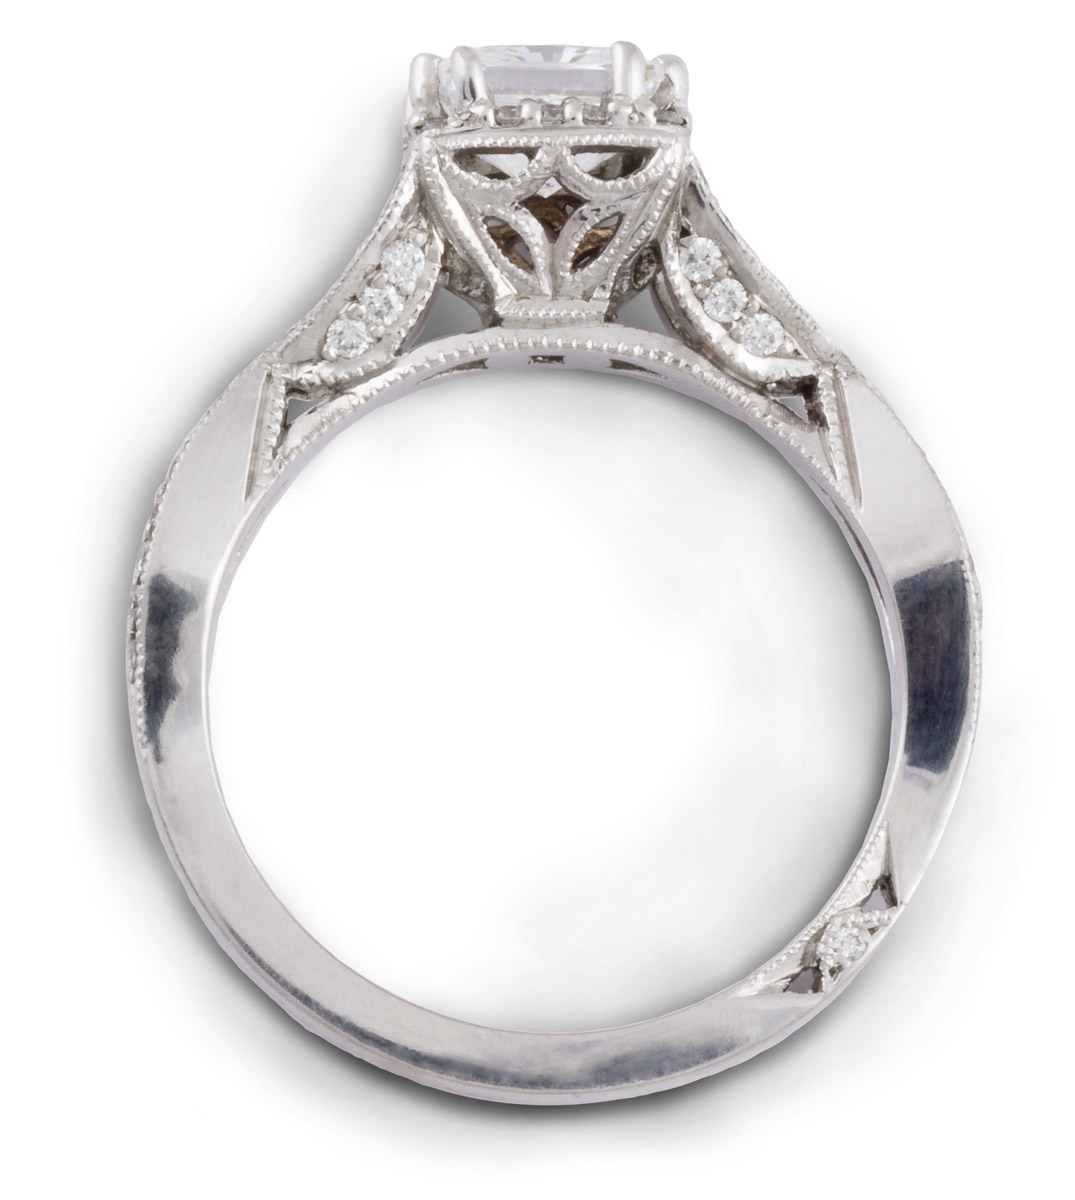 Princess Halo Engagement Ring With Entwined Shank - Top